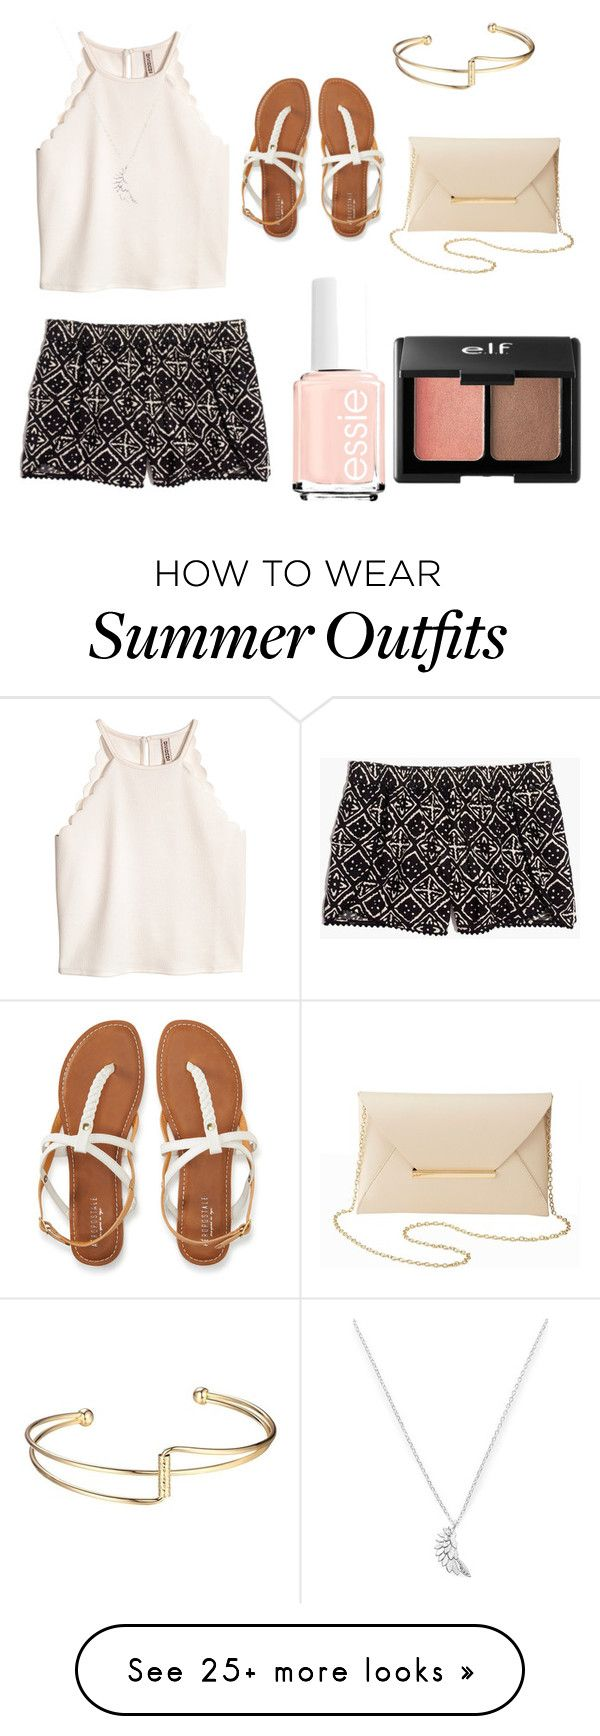 """""""Summer Outfits #1"""" by cydneydjones on Polyvore featuring Aéropostale, Madewell, Estella Bartlett and Charlotte Russe"""